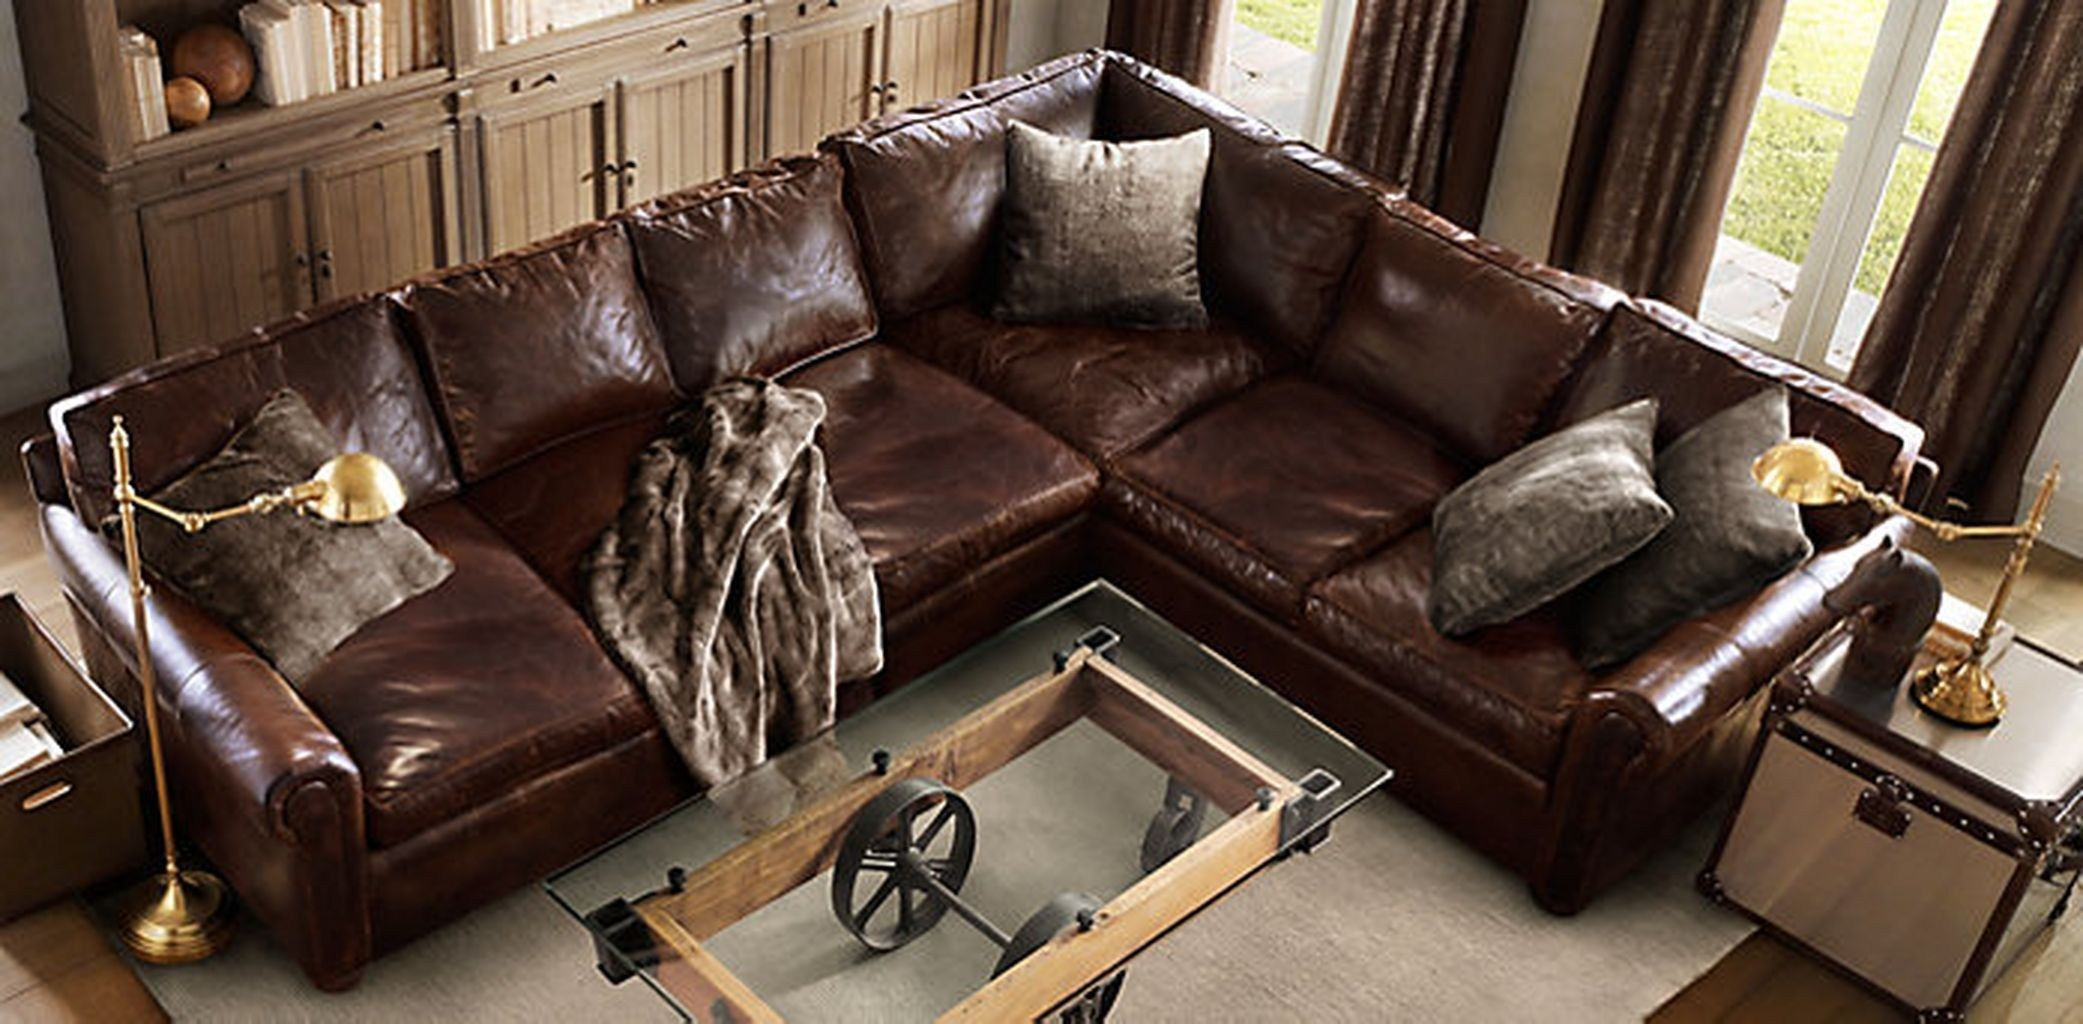 30 Stunning Deep Seated Sofa Sectional to Makes Your Room